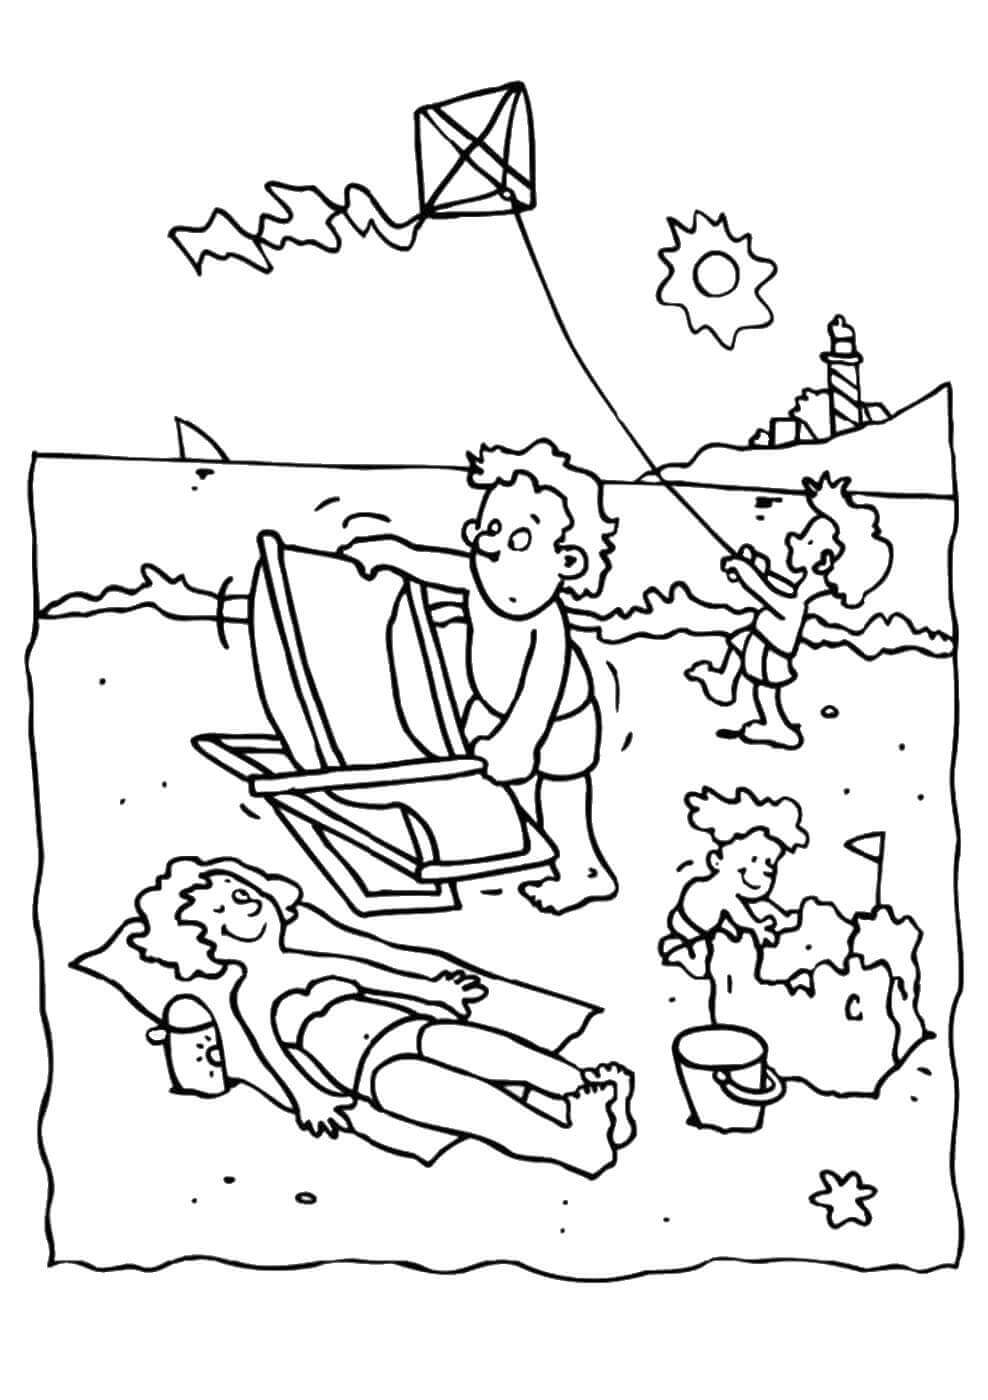 beach coloring pages - photo#19